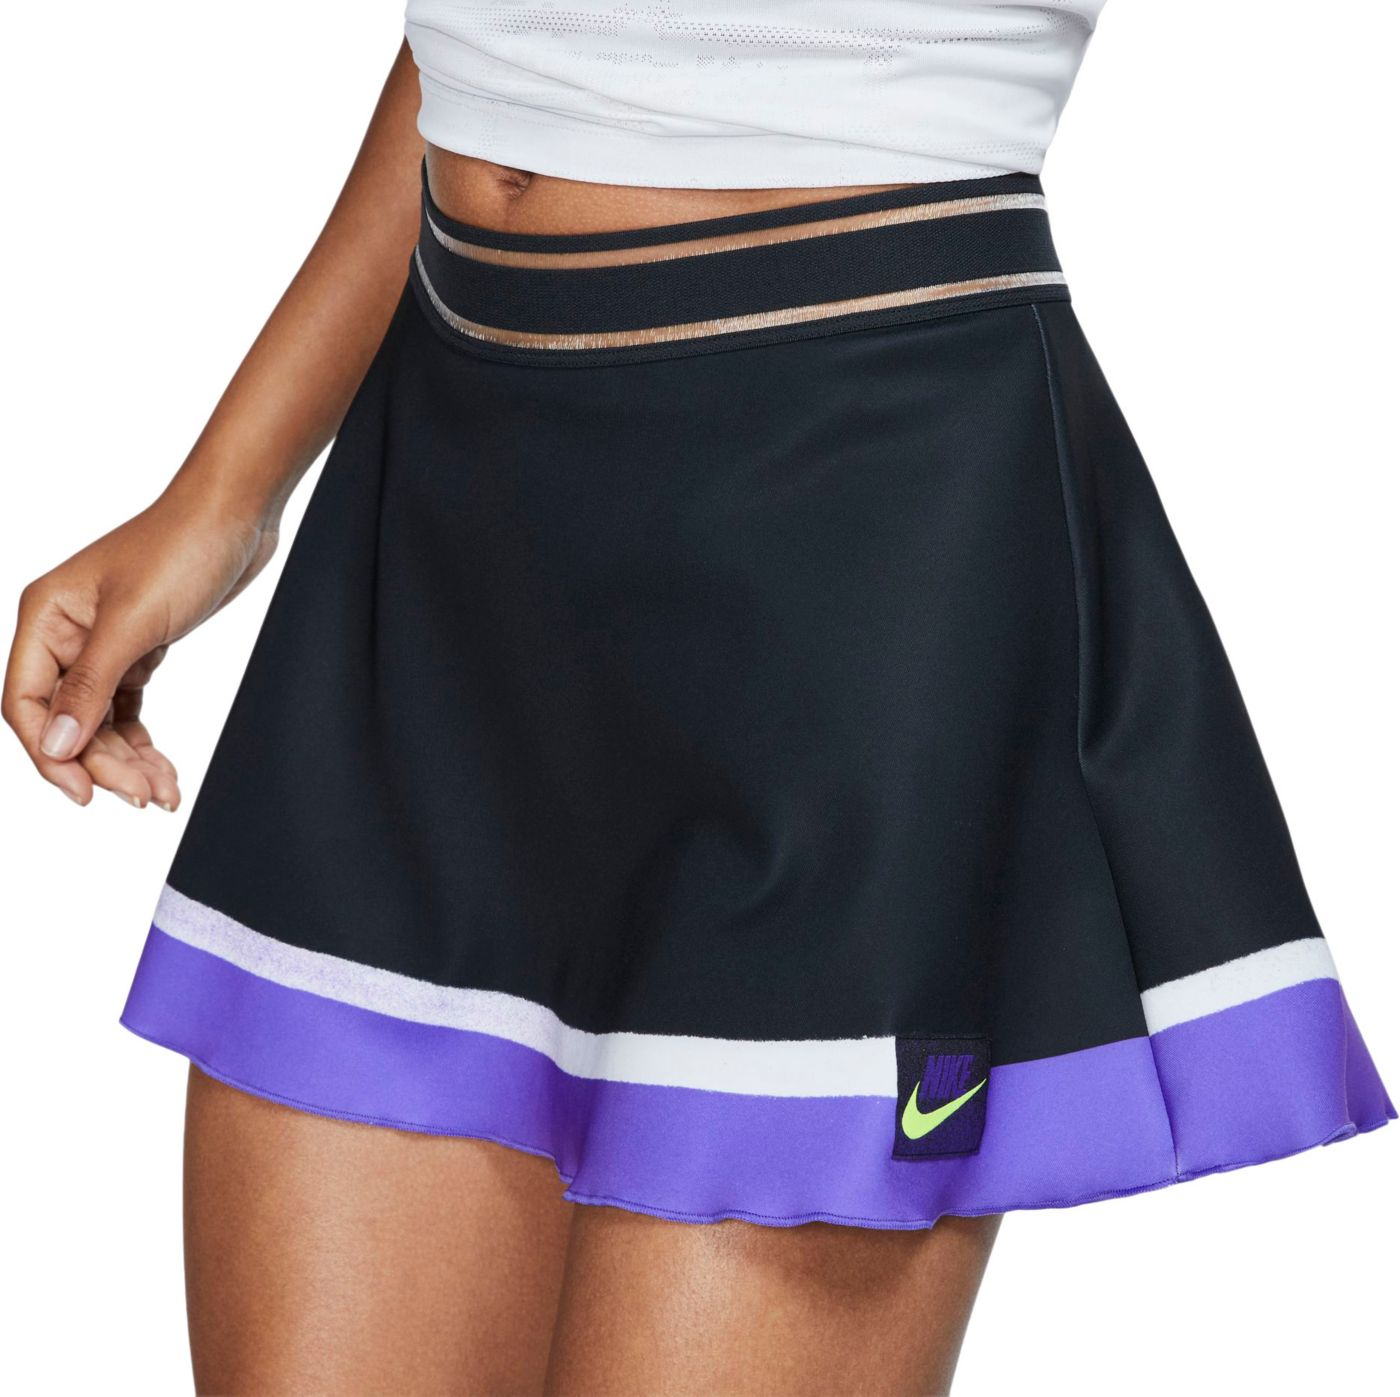 Nike Women's Court Slam Tennis Skirt